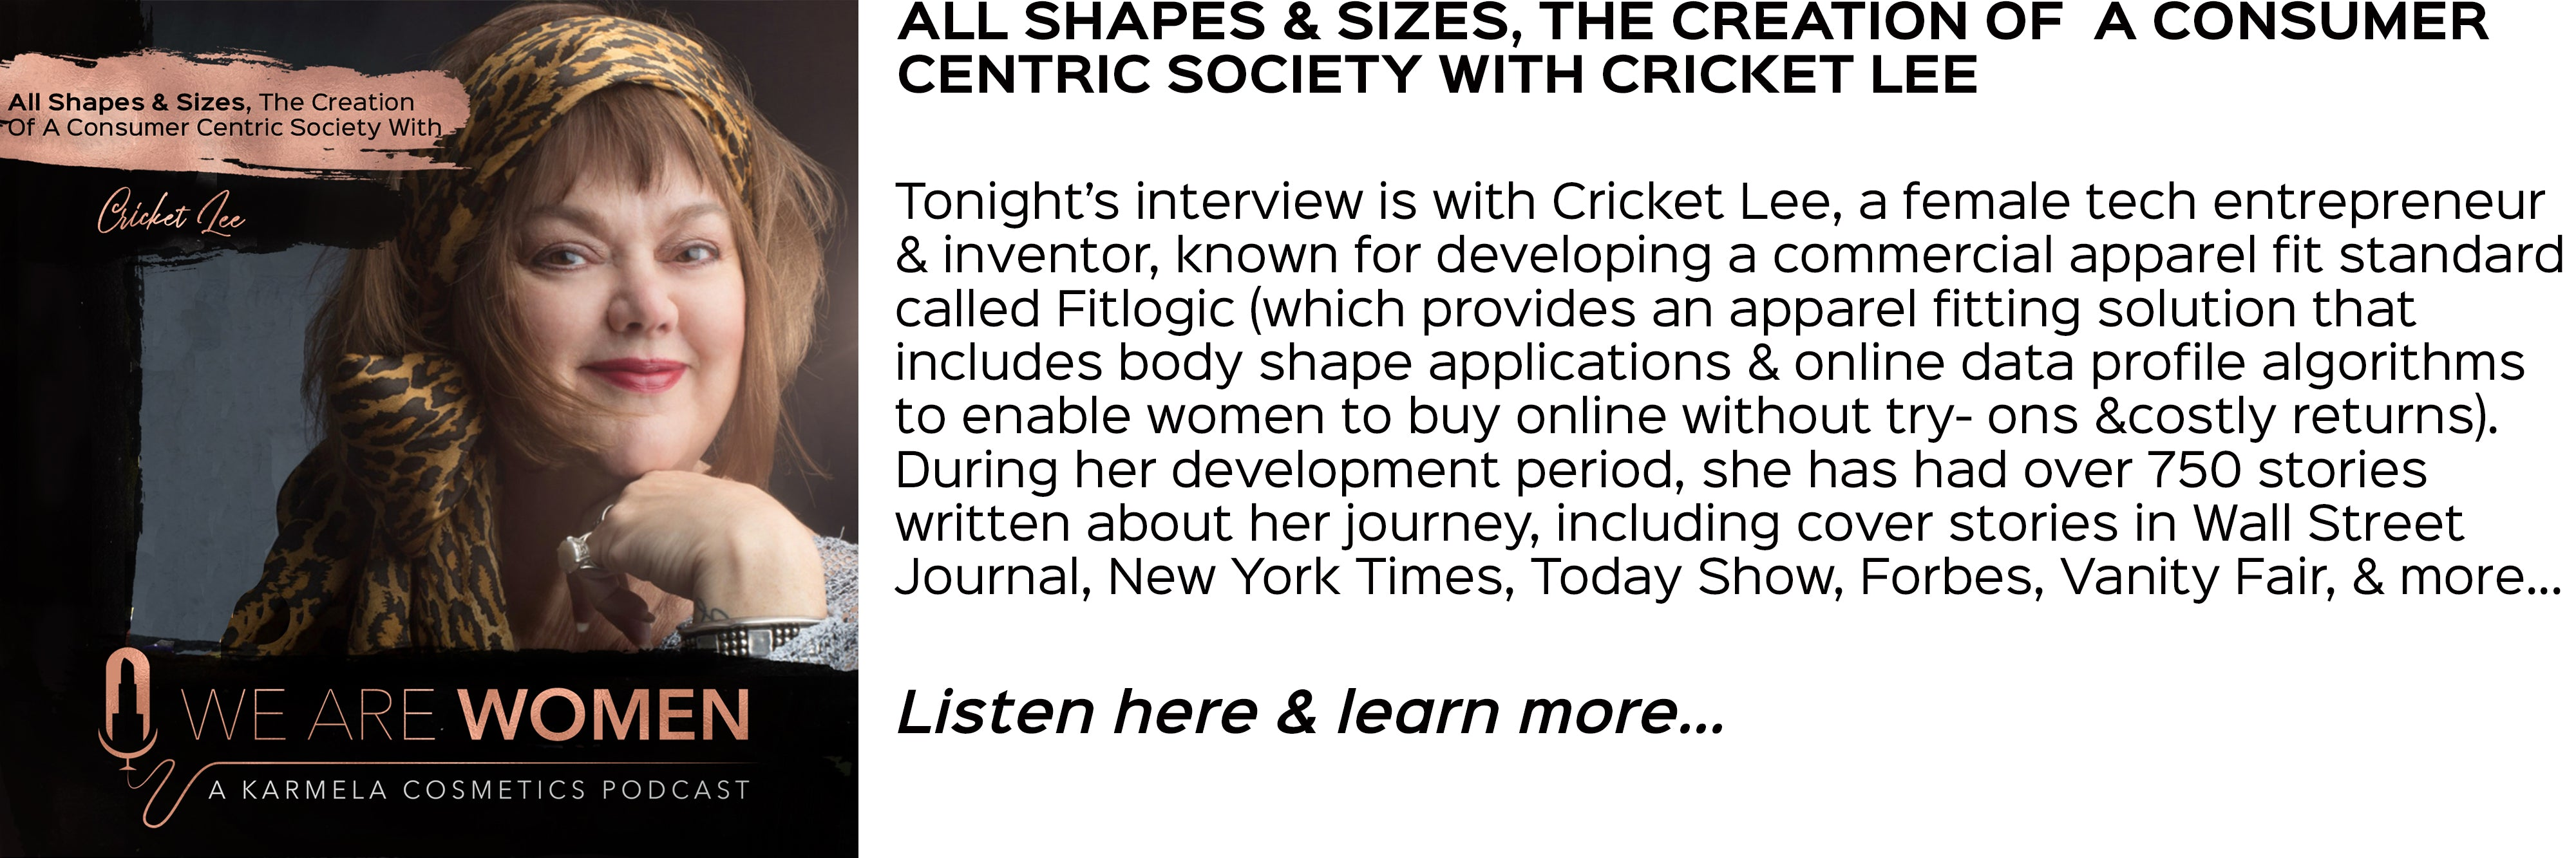 cricket lee, inclusivity in sizes, fashion trends